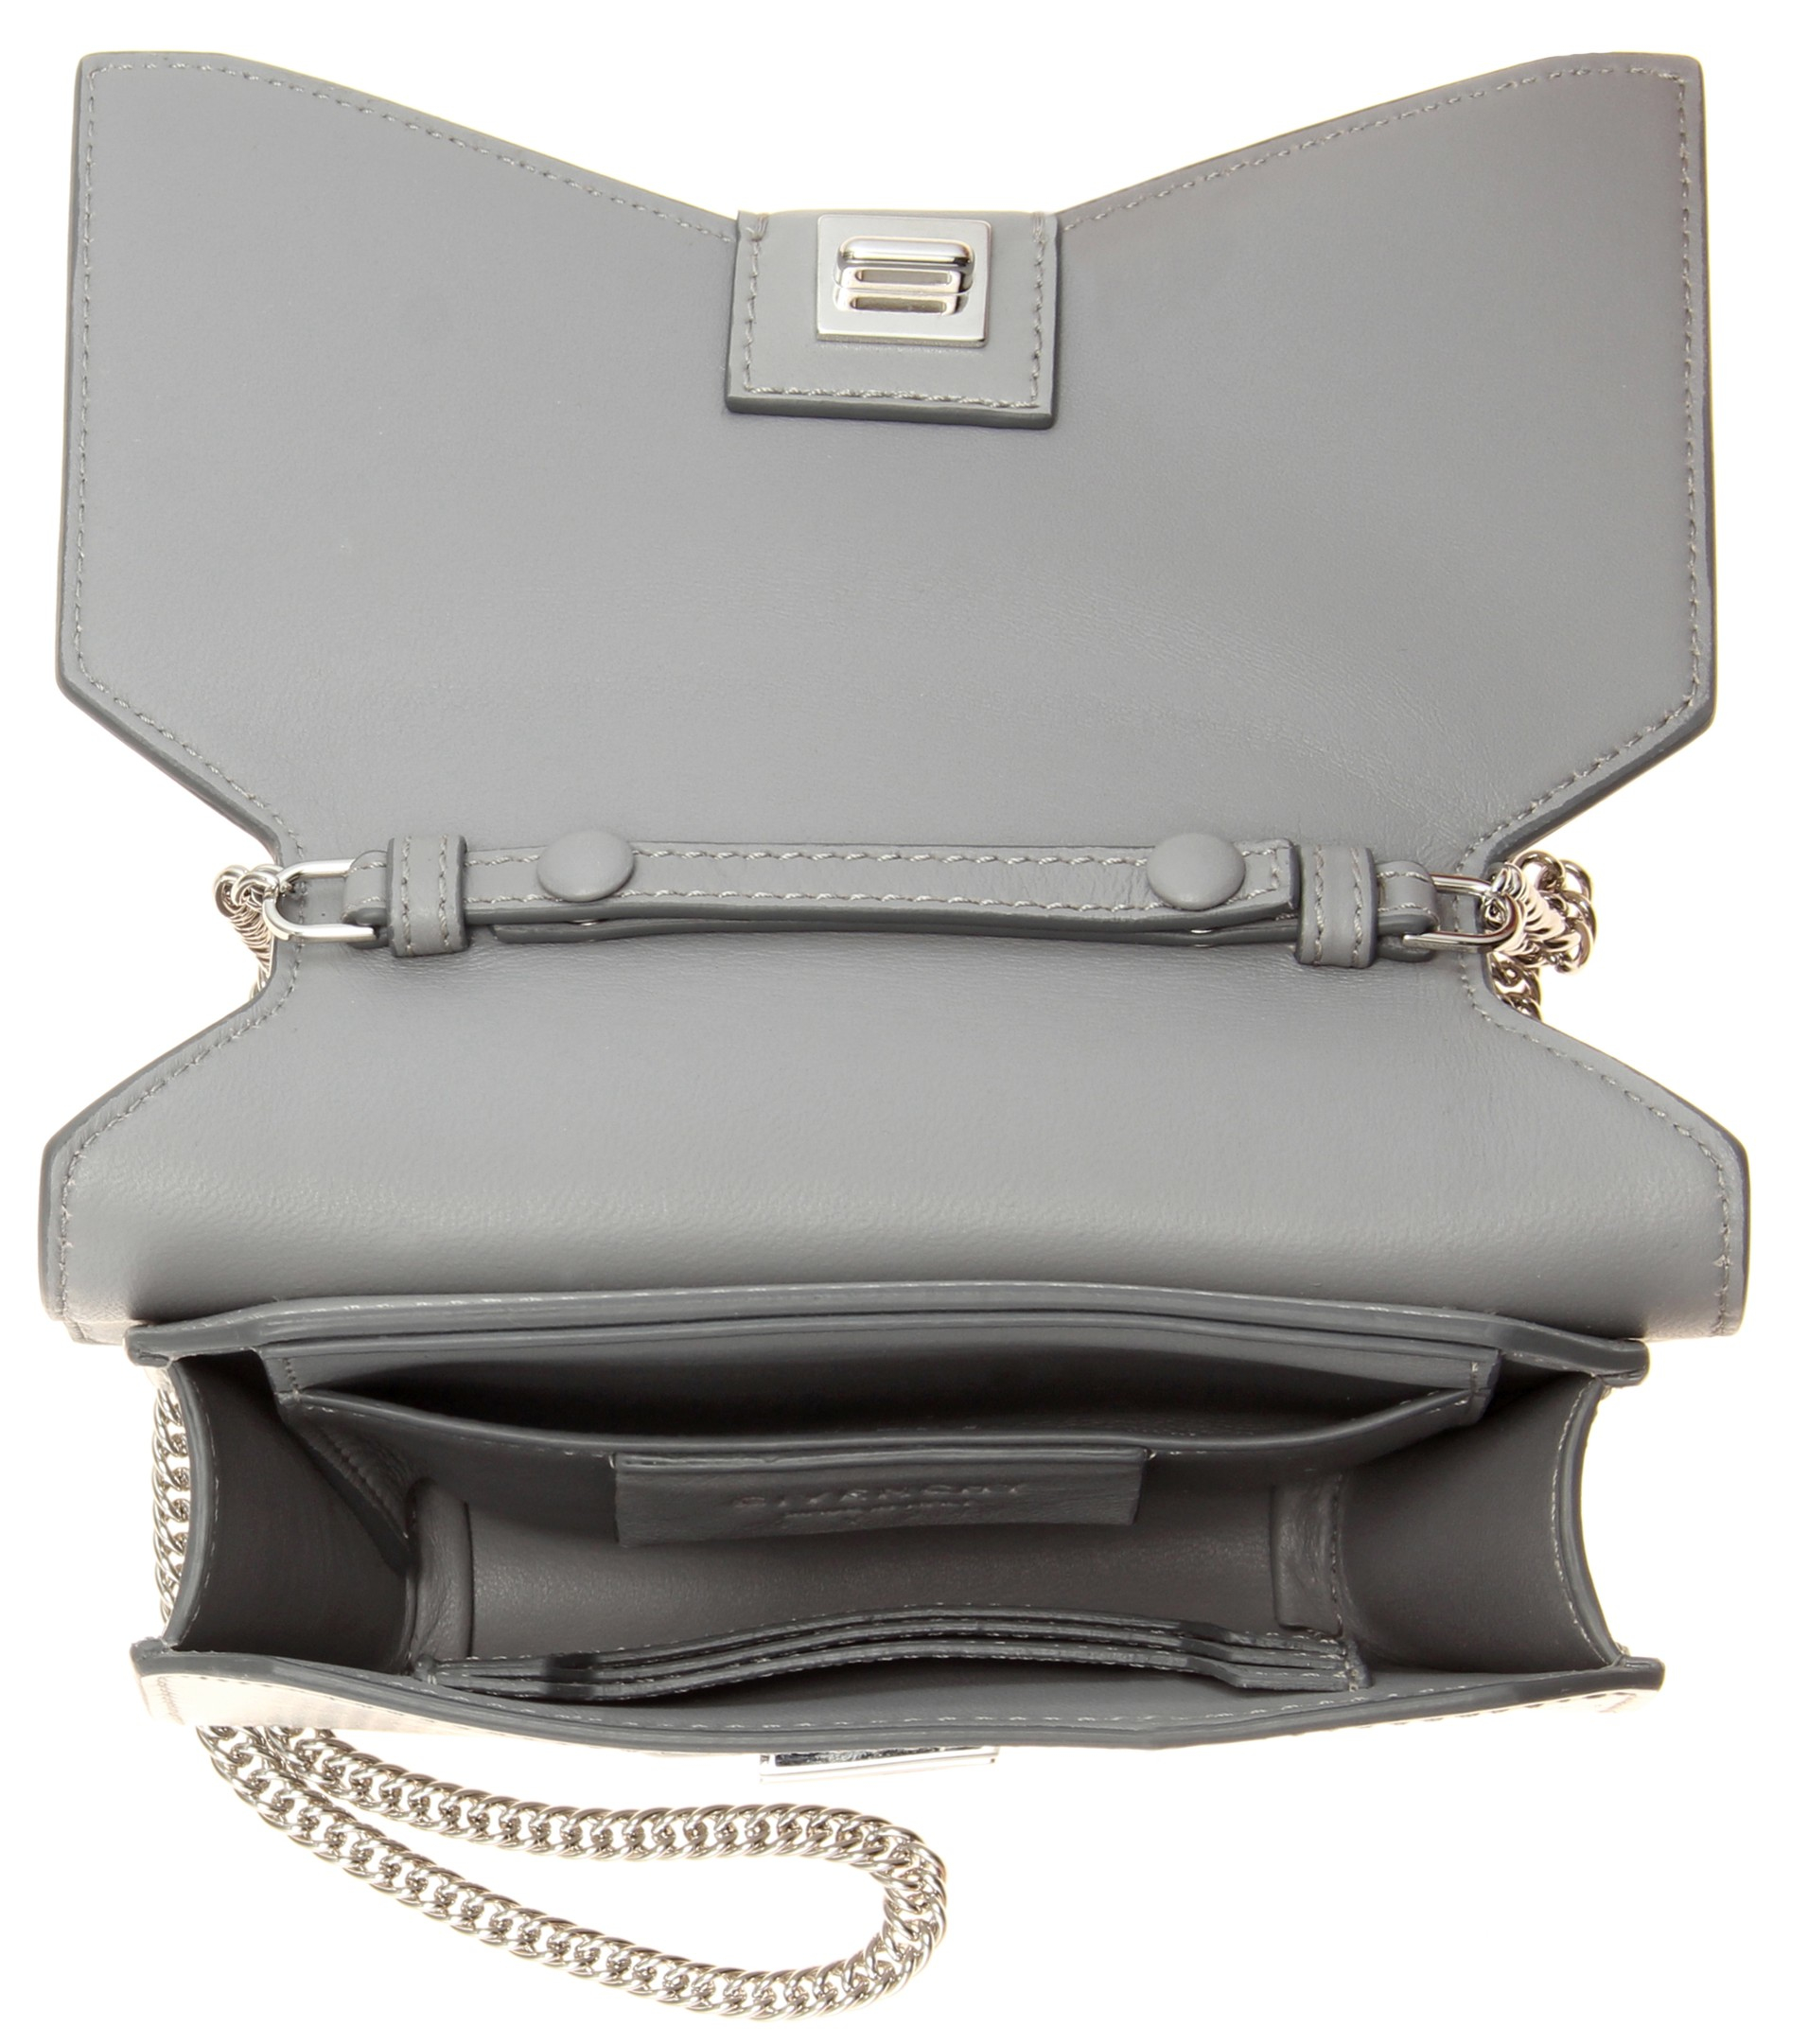 fe2c1cbc587f Lyst - Givenchy Bow Cut Leather Shoulder Bag in Gray